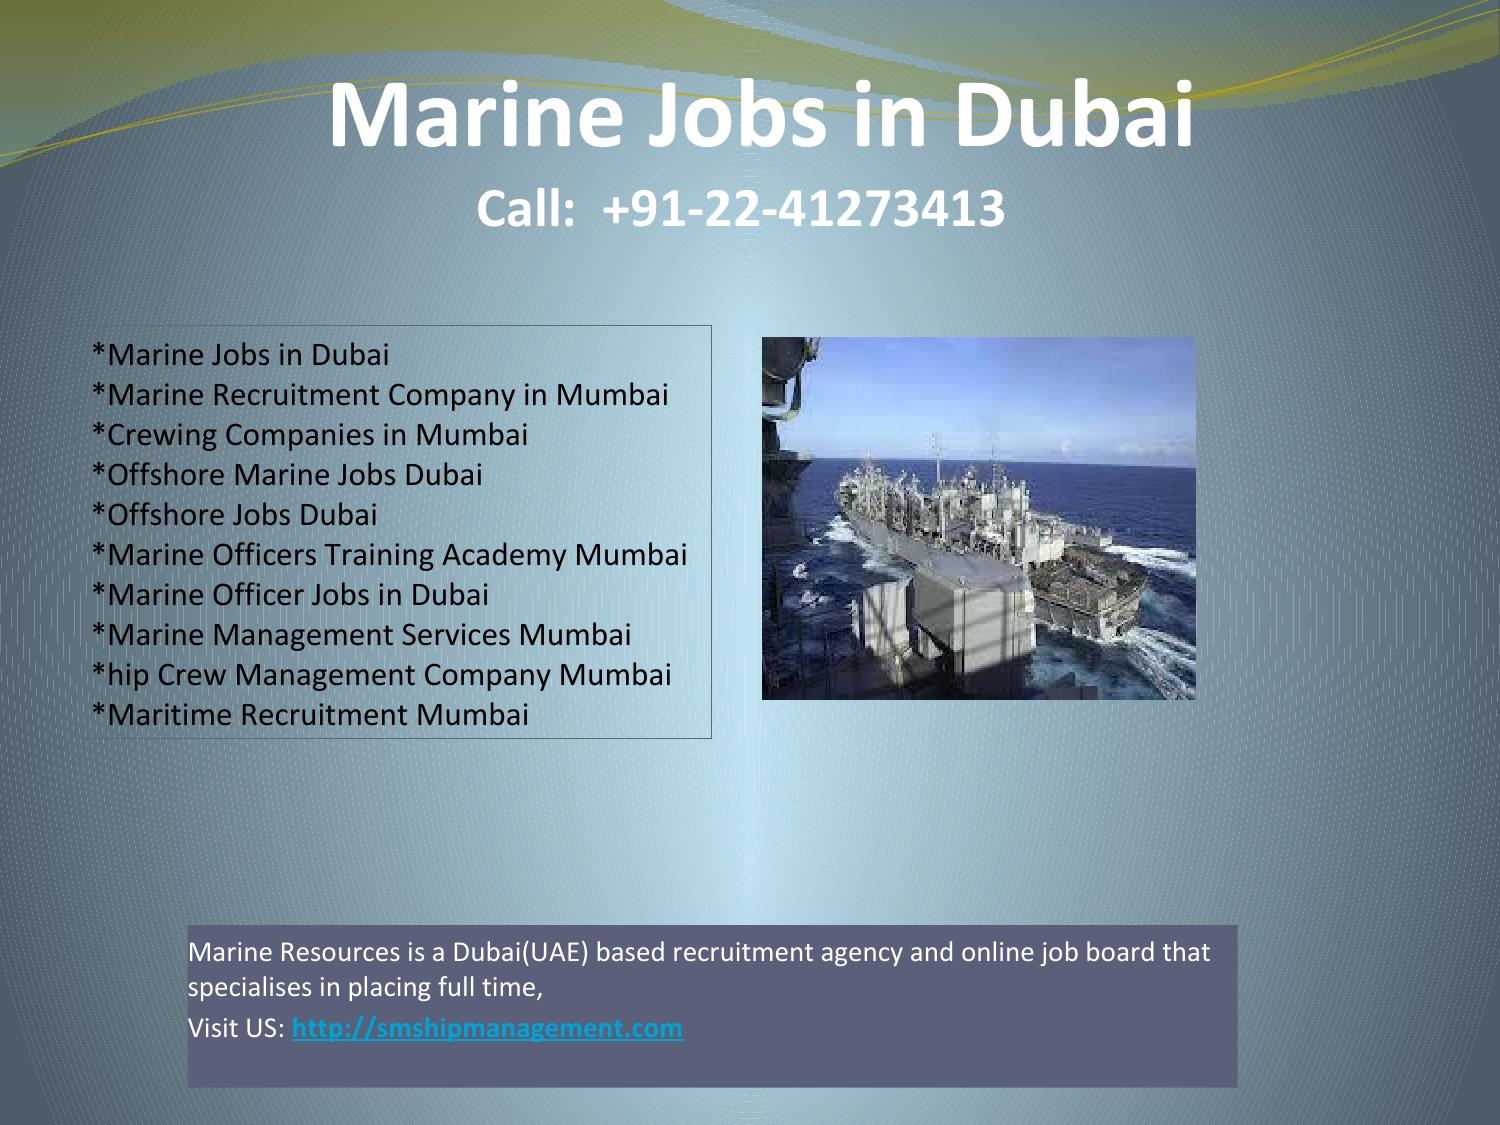 Maritime Recruitment Mumbai,Offshore Marine Jobs Dubai, Marine Jobs